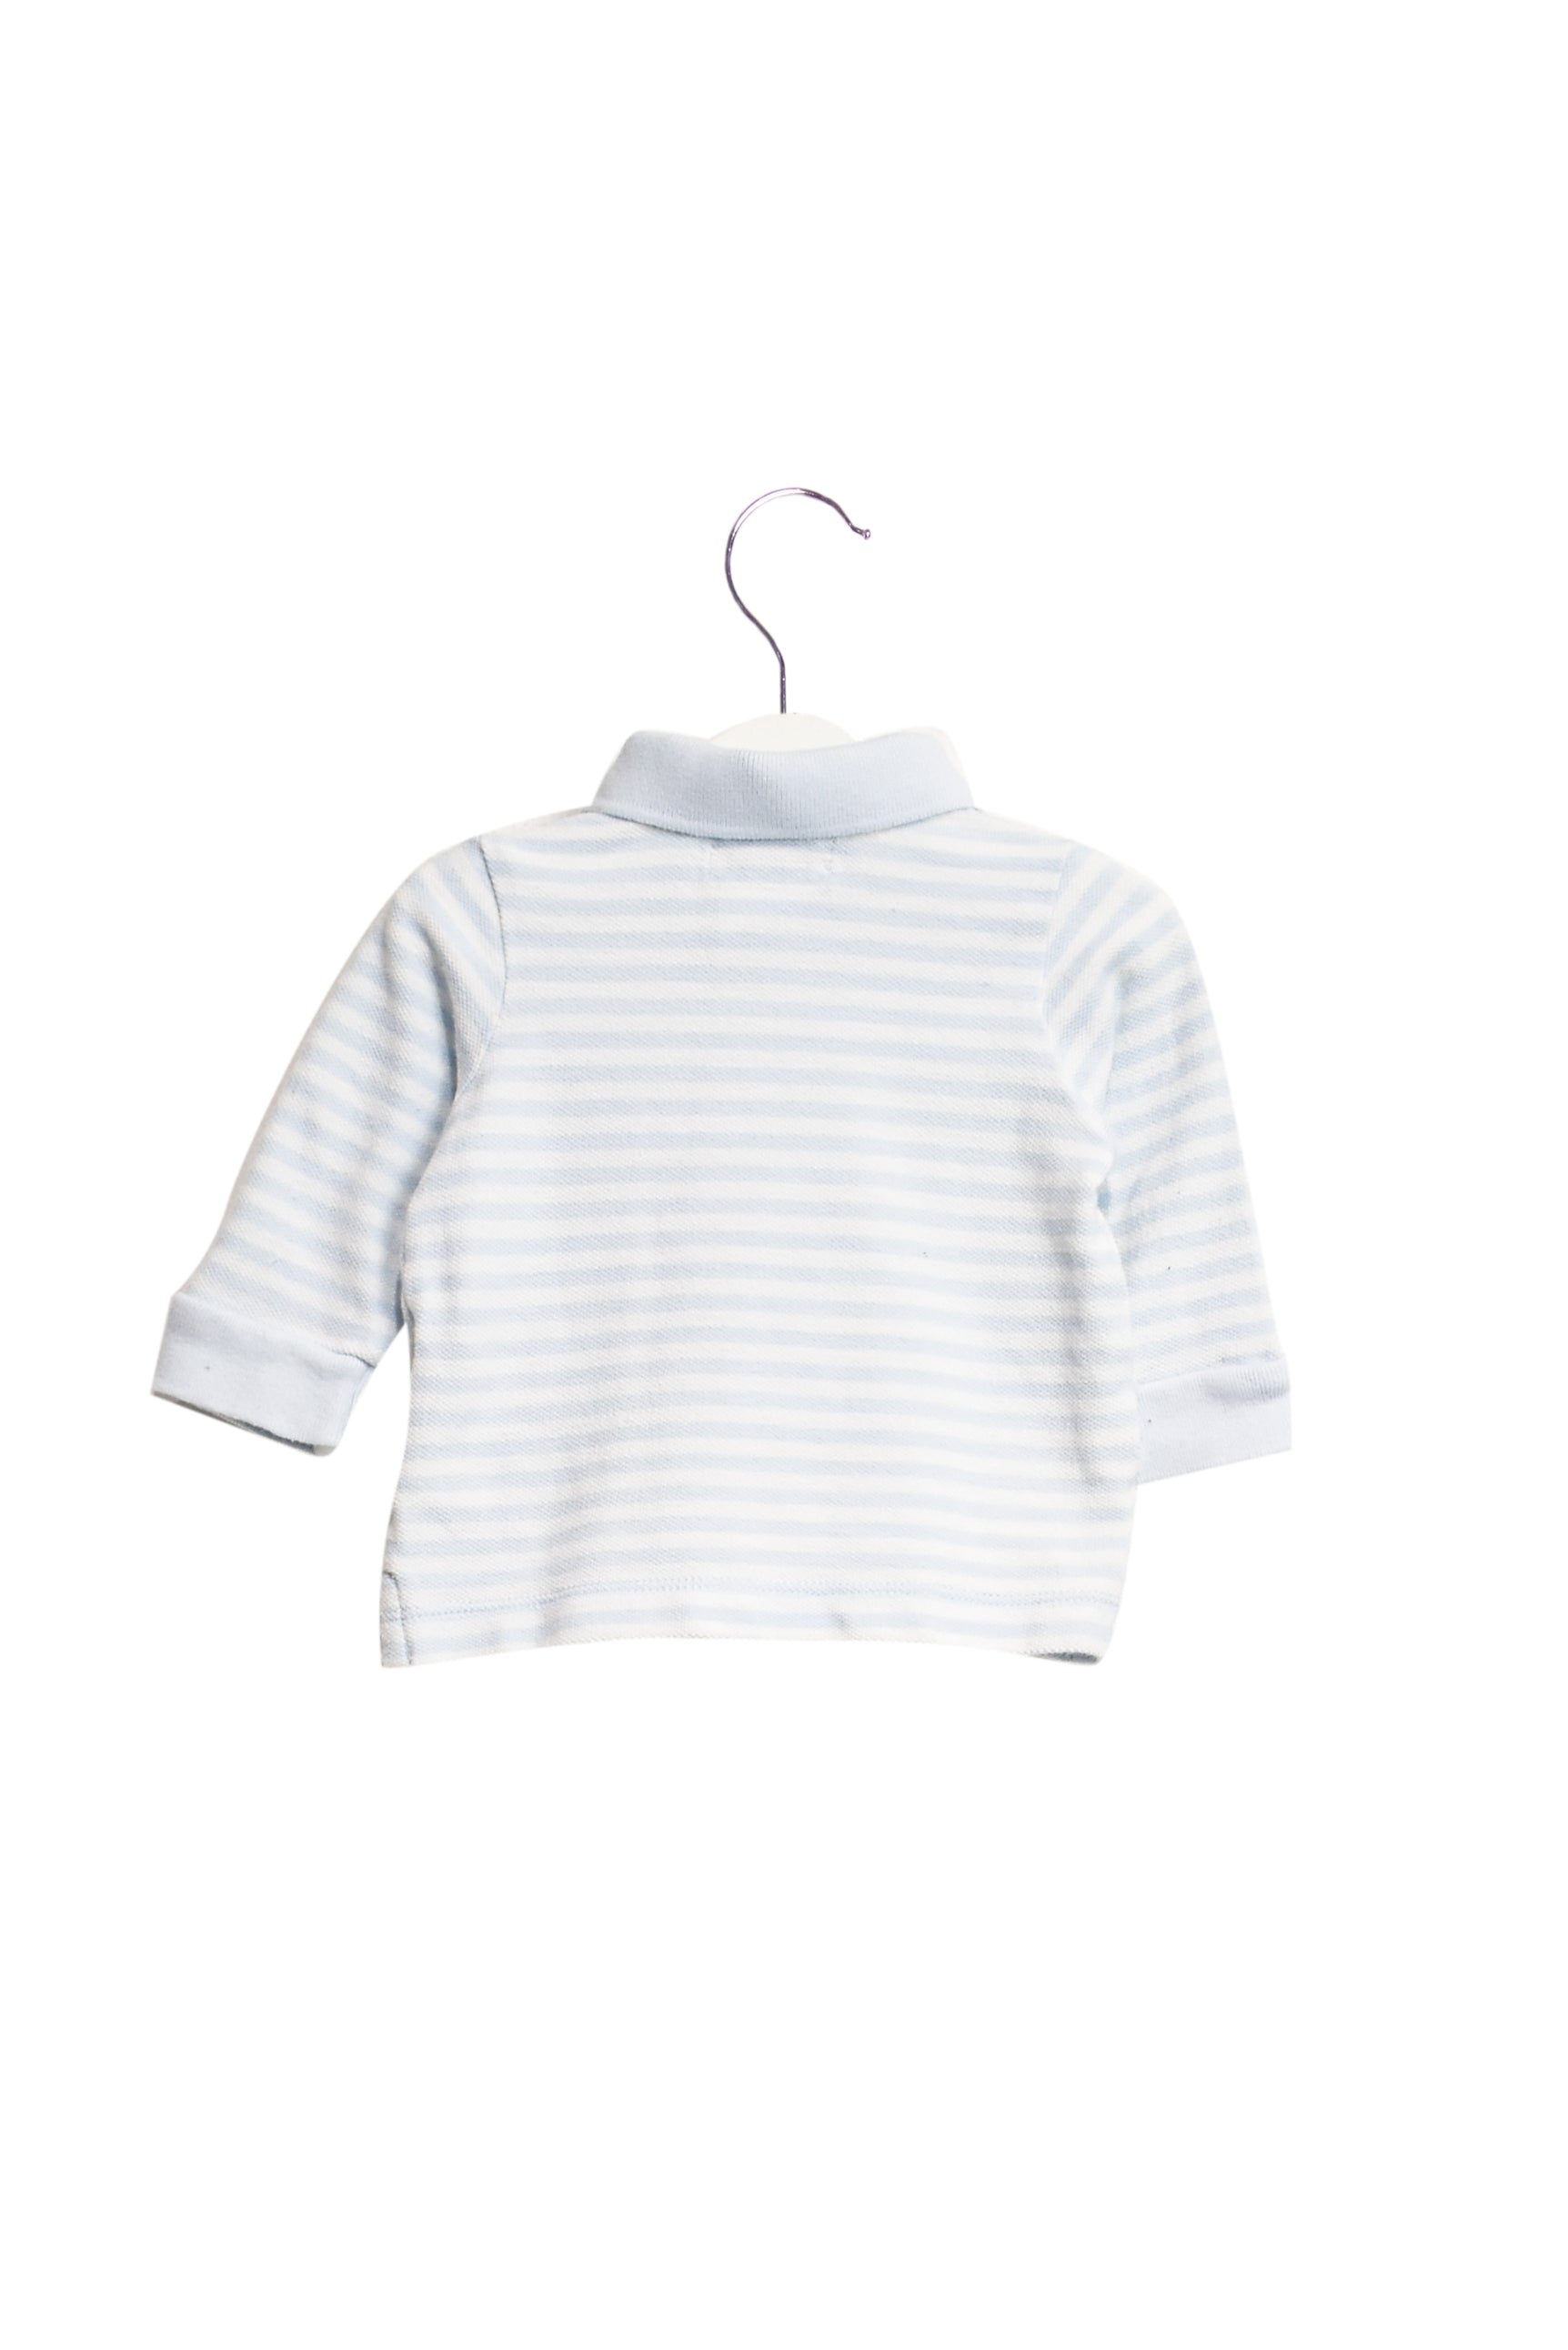 10021584 Ralph Lauren Baby~Polo 3M at Retykle